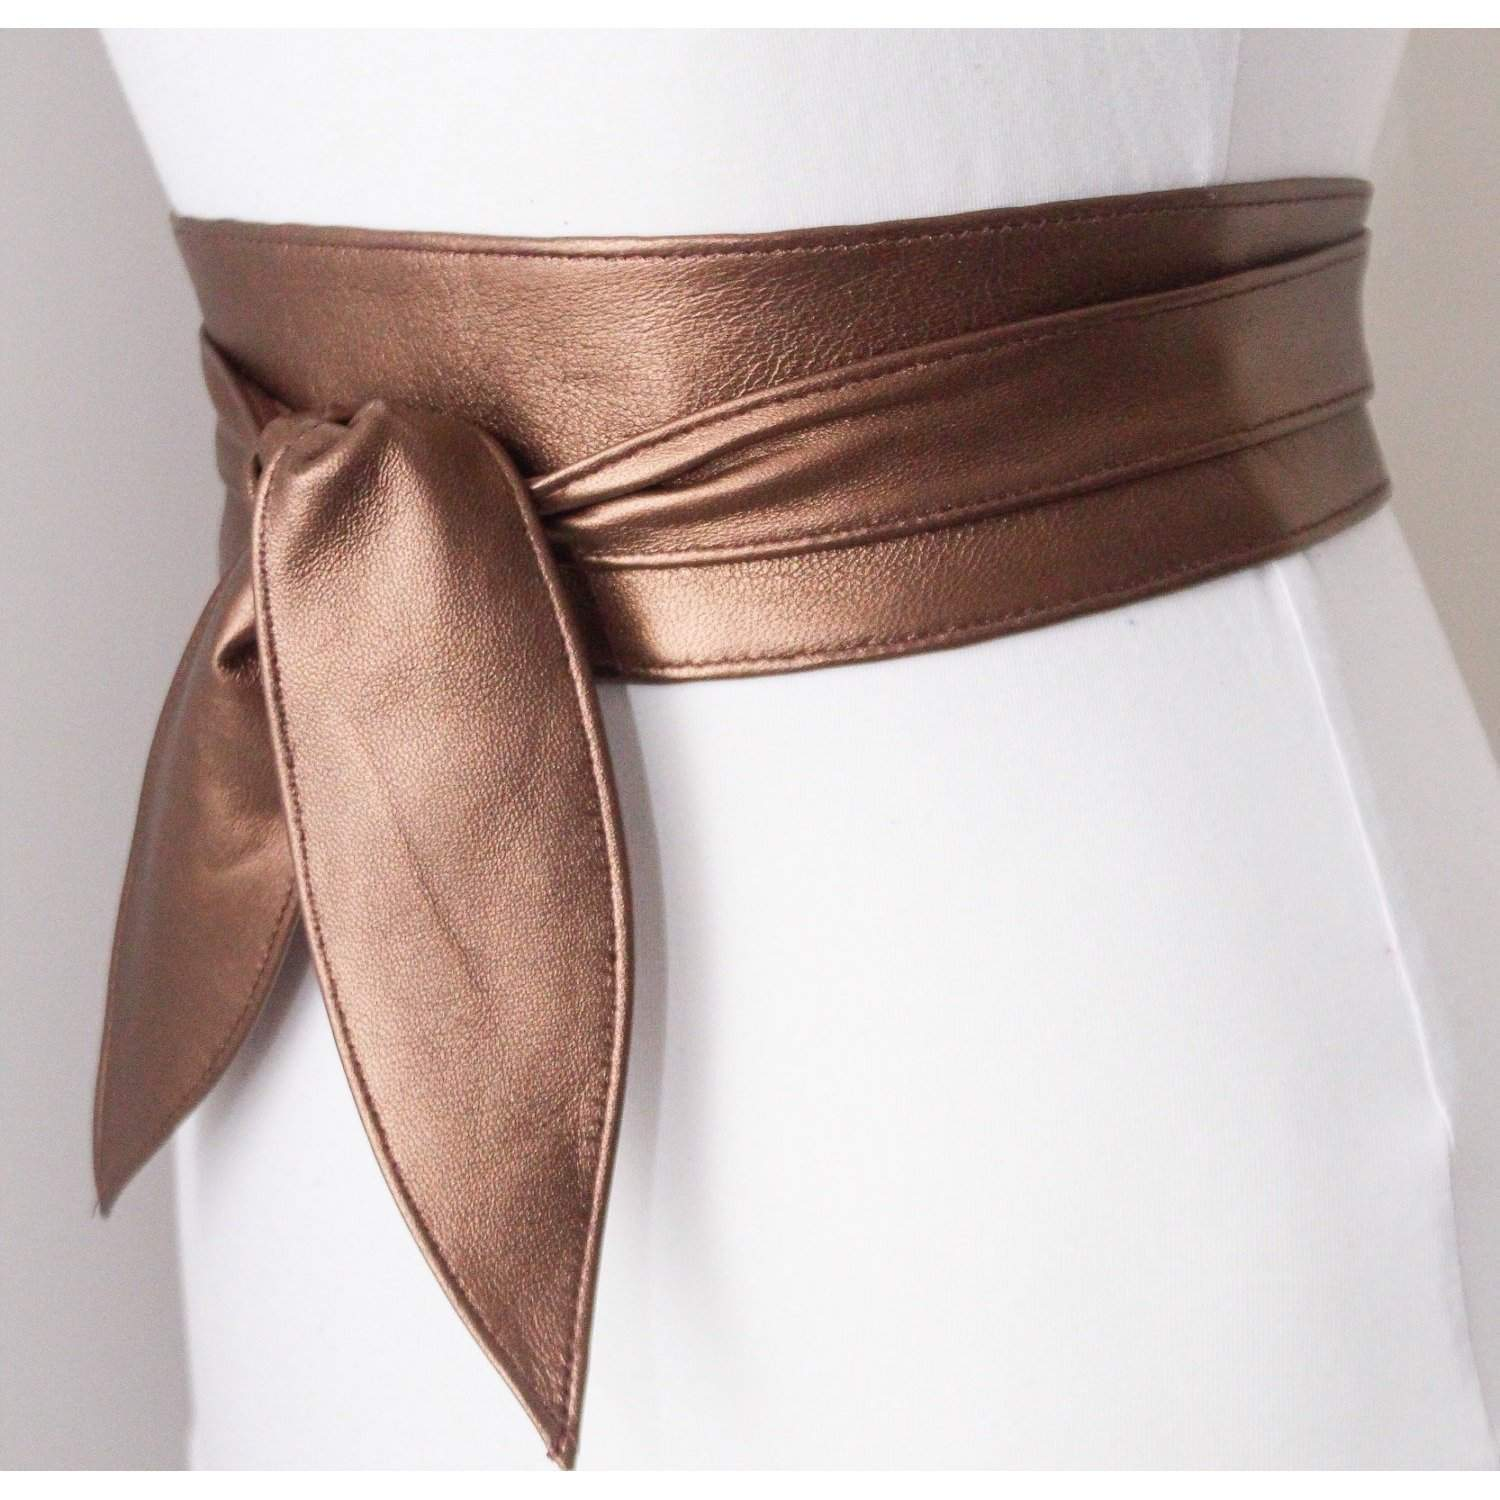 Metallic Brown Bronze Leather Tulip Tie Obi Belt | Waist Belt | Sash Tie Belt | Leather wrap Belt | Bridesmaid belt | Petite to Plus Size - loveyaayaa